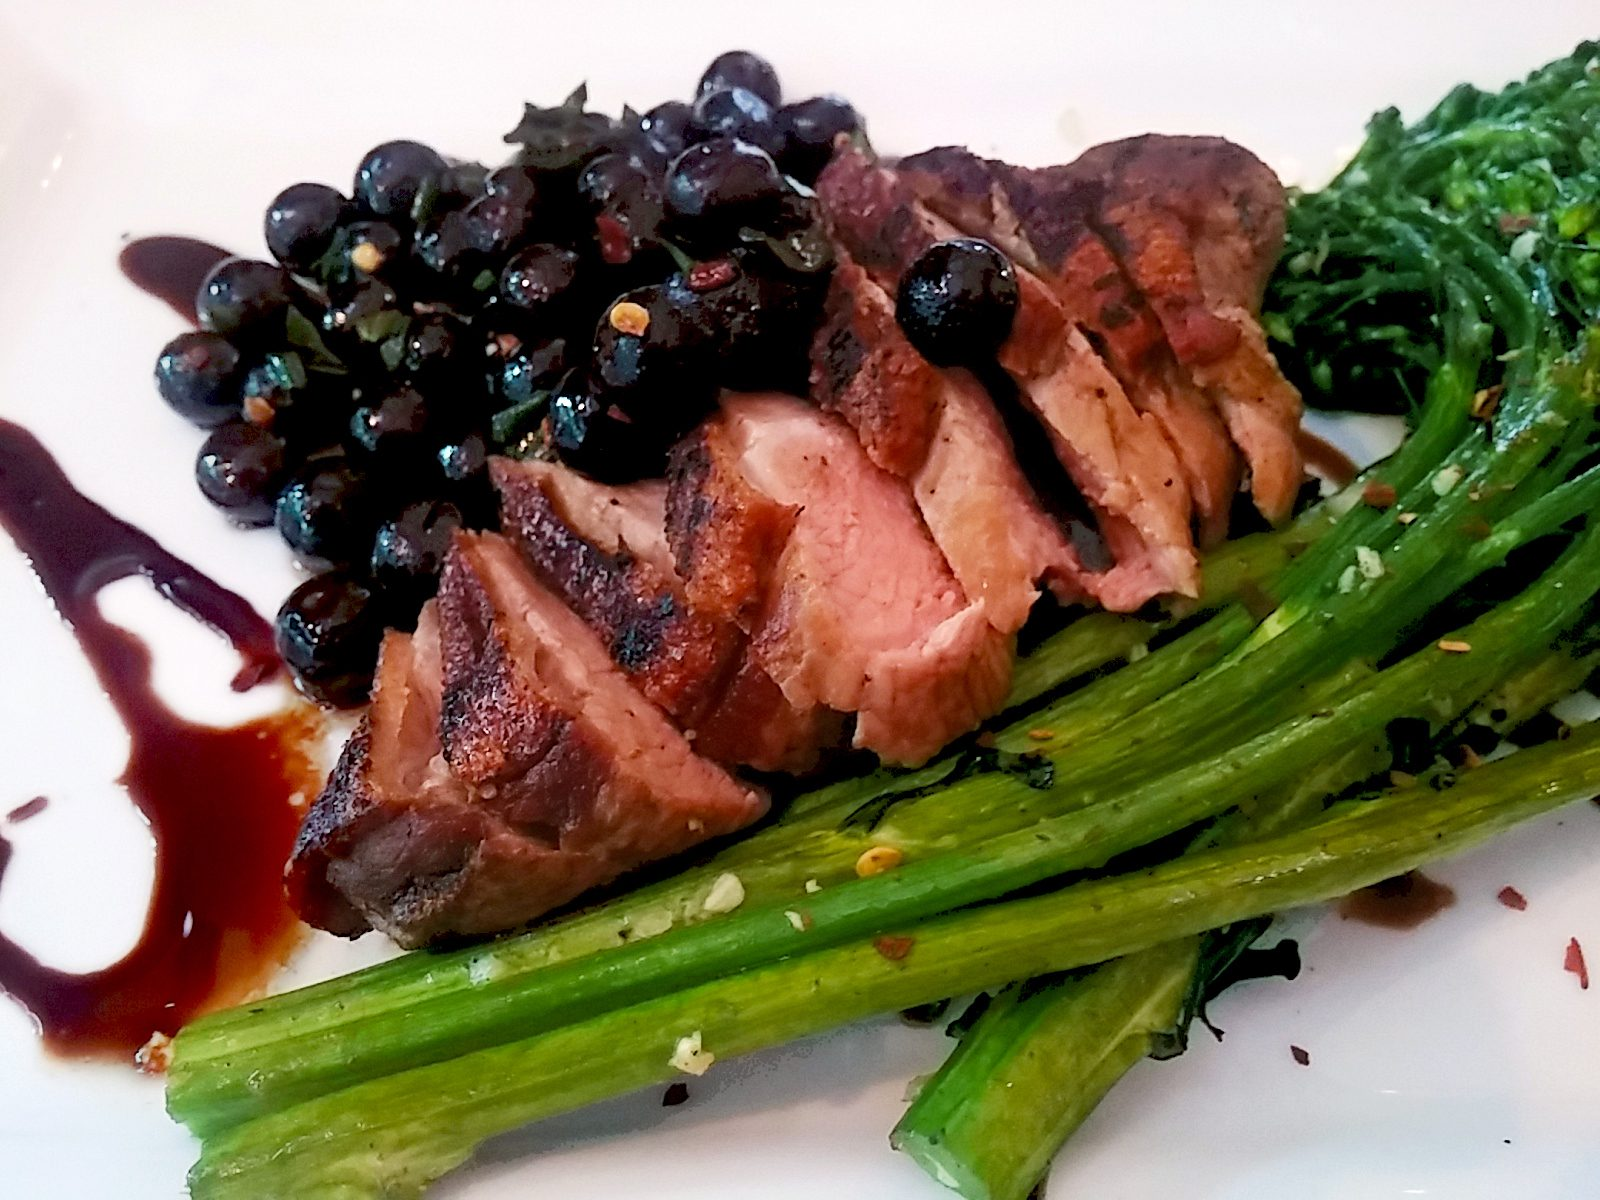 Roasted Duck and Broccolini with Huckleberry Relish